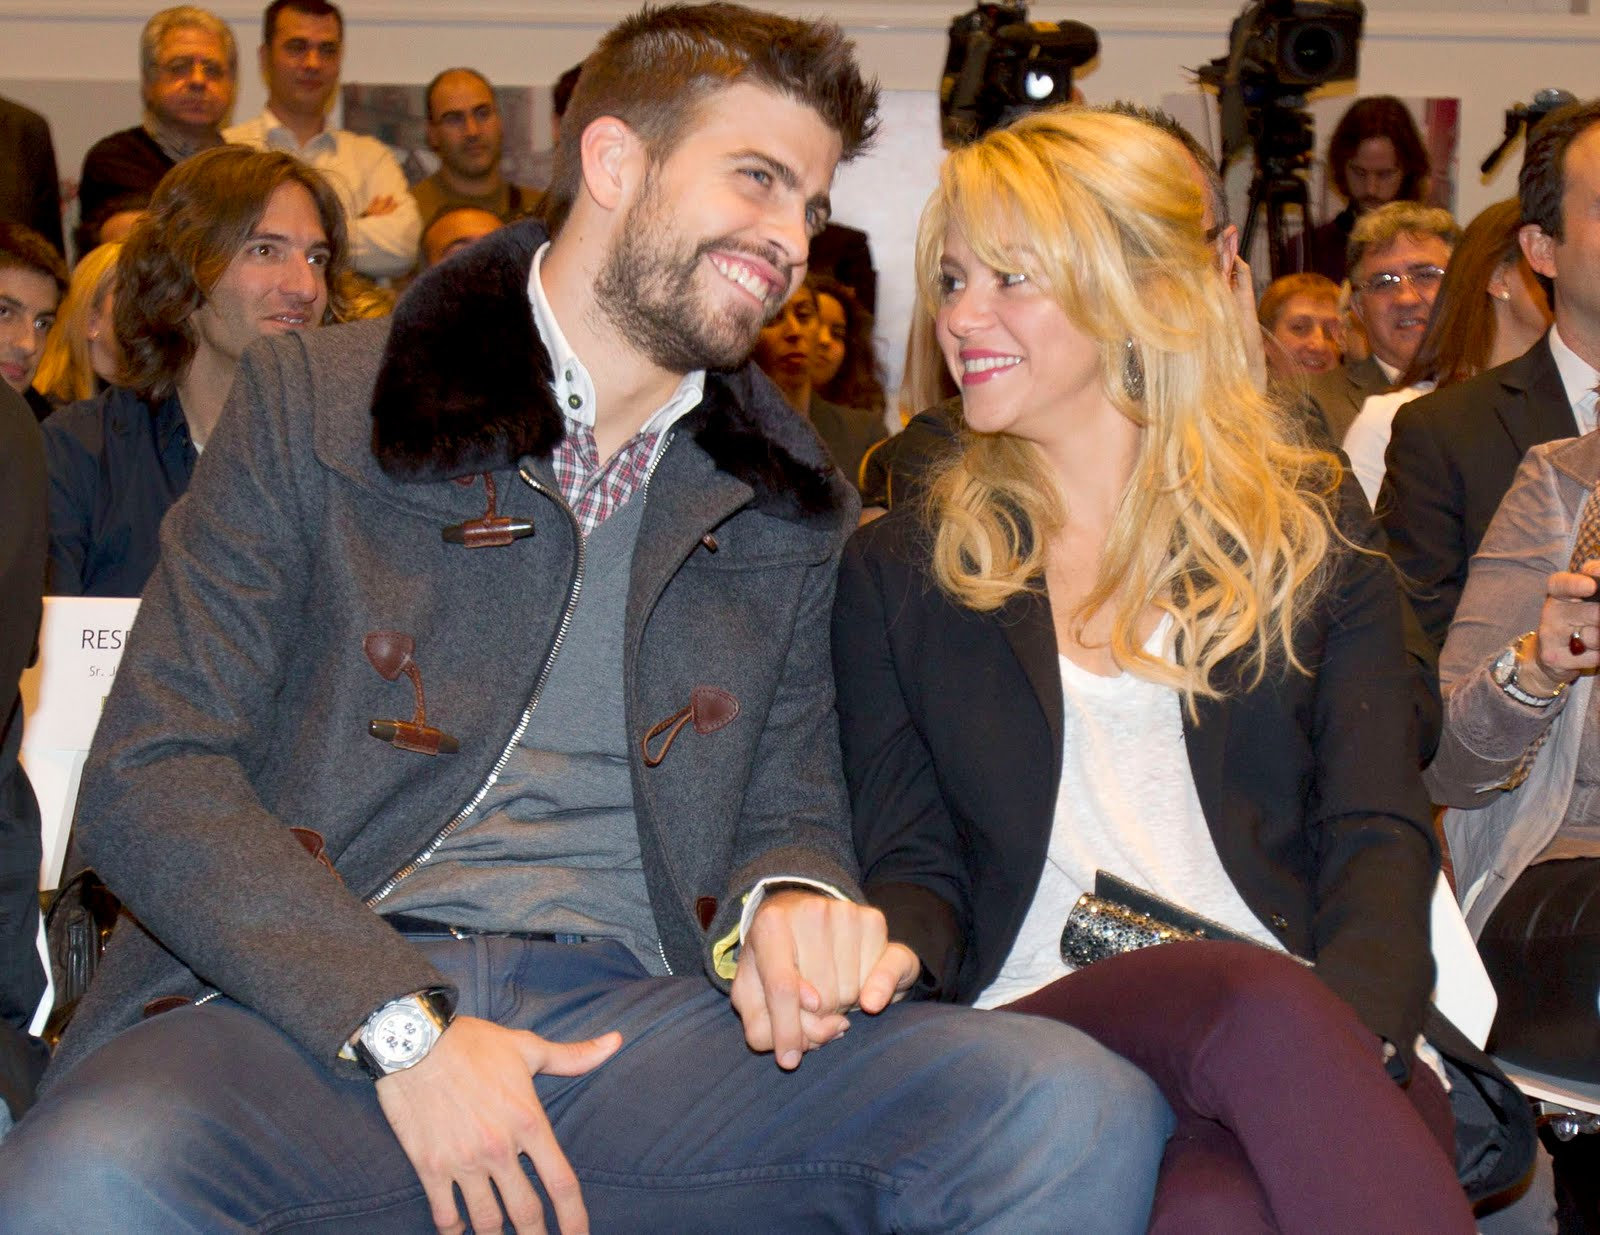 Shakira and Pique. - Page 3 Shakira-piqu-mother-gerard-pique-27488489-1600-1235